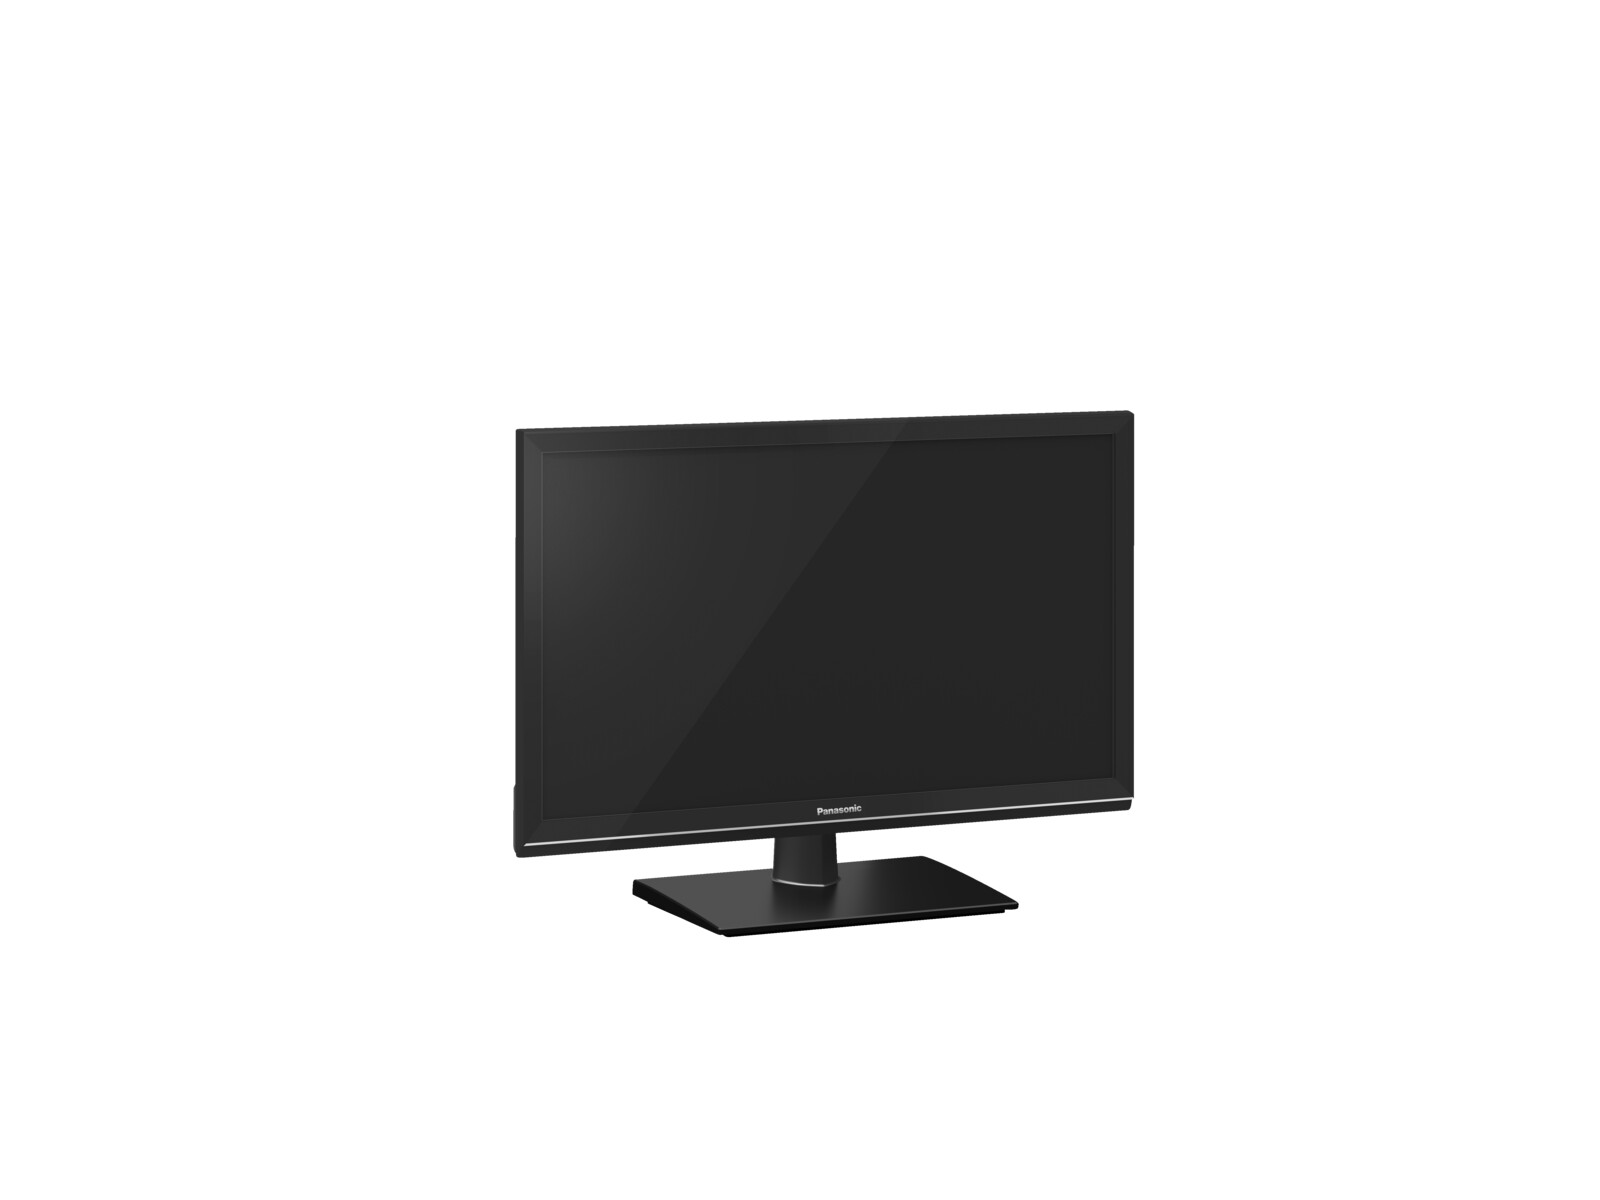 panasonic tx 24esw504 led tv flat 24 zoll hd ready. Black Bedroom Furniture Sets. Home Design Ideas